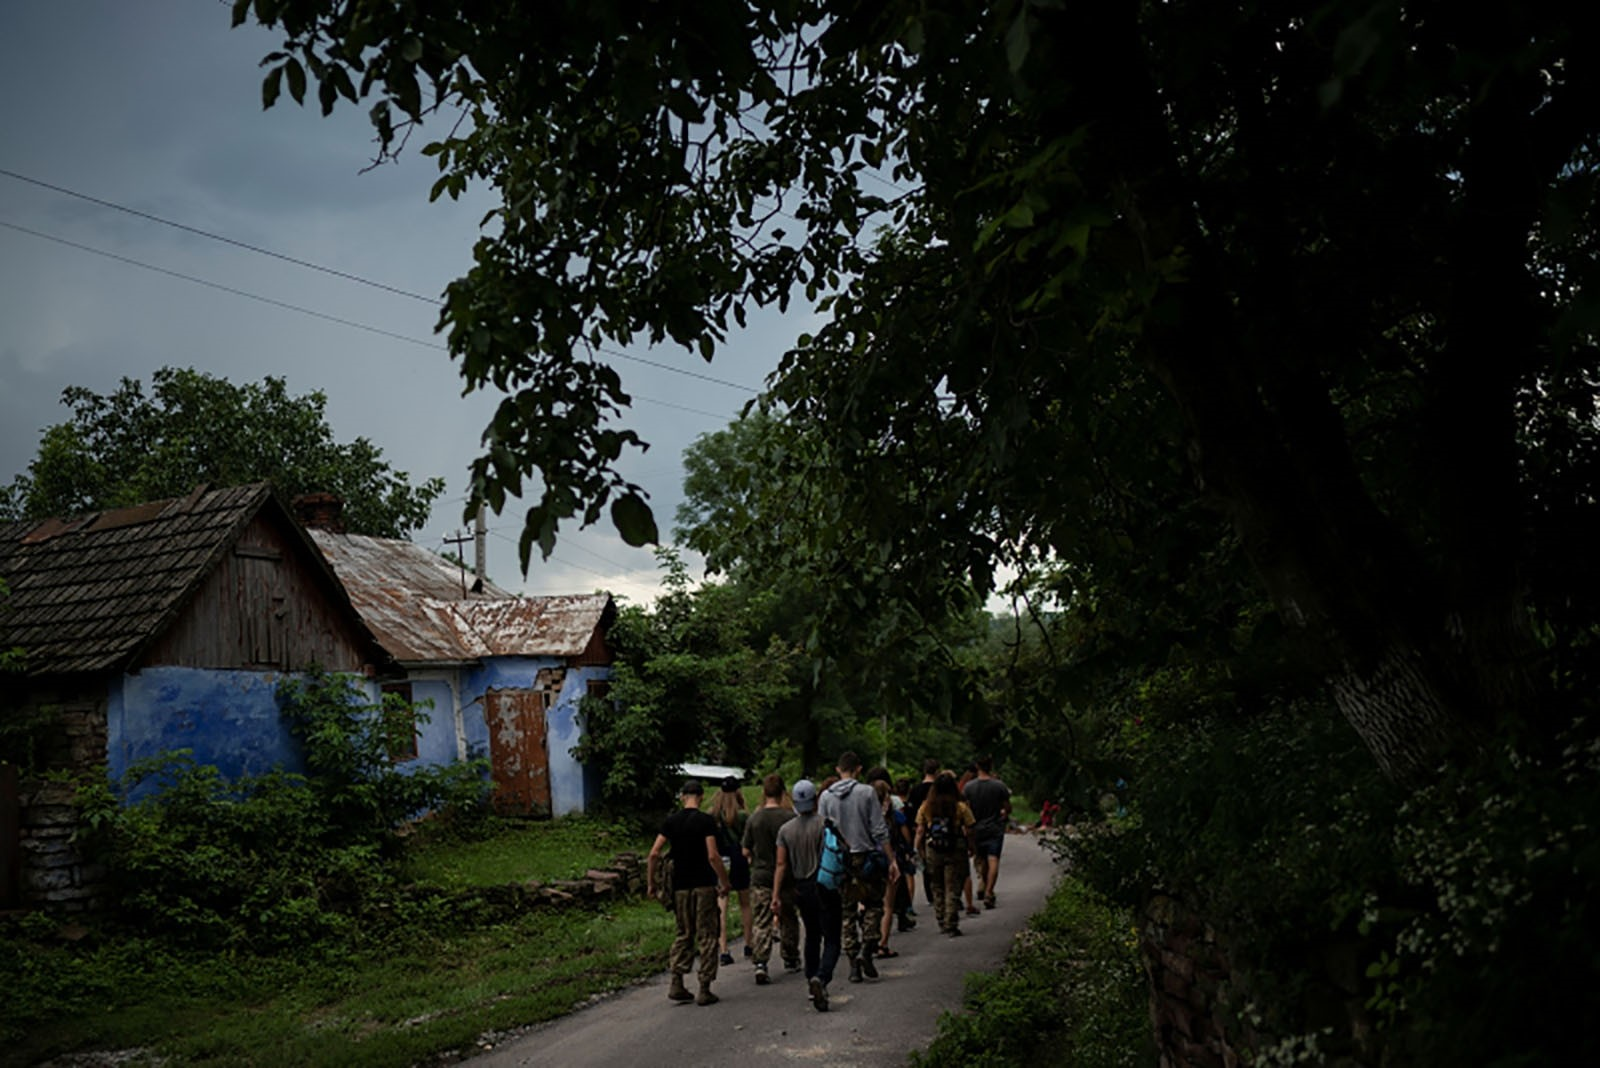 Young participants of the camp walk to a campsite in a village.